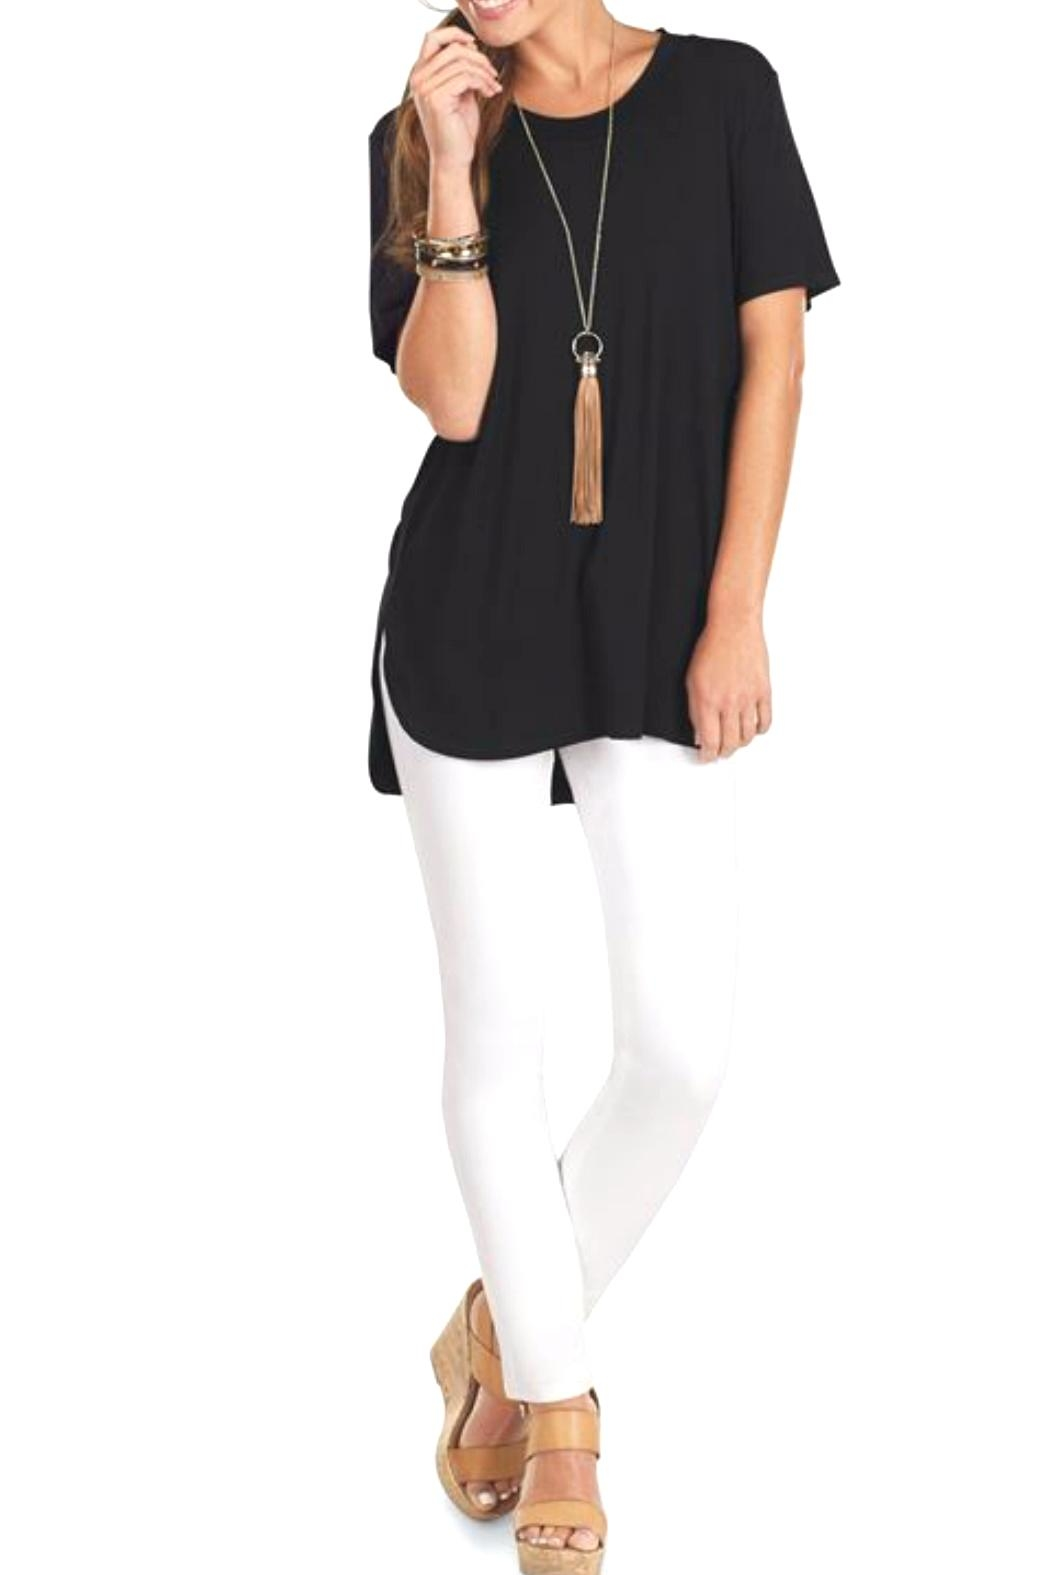 The Gift Pod Black Jersey Tunic - Front Cropped Image